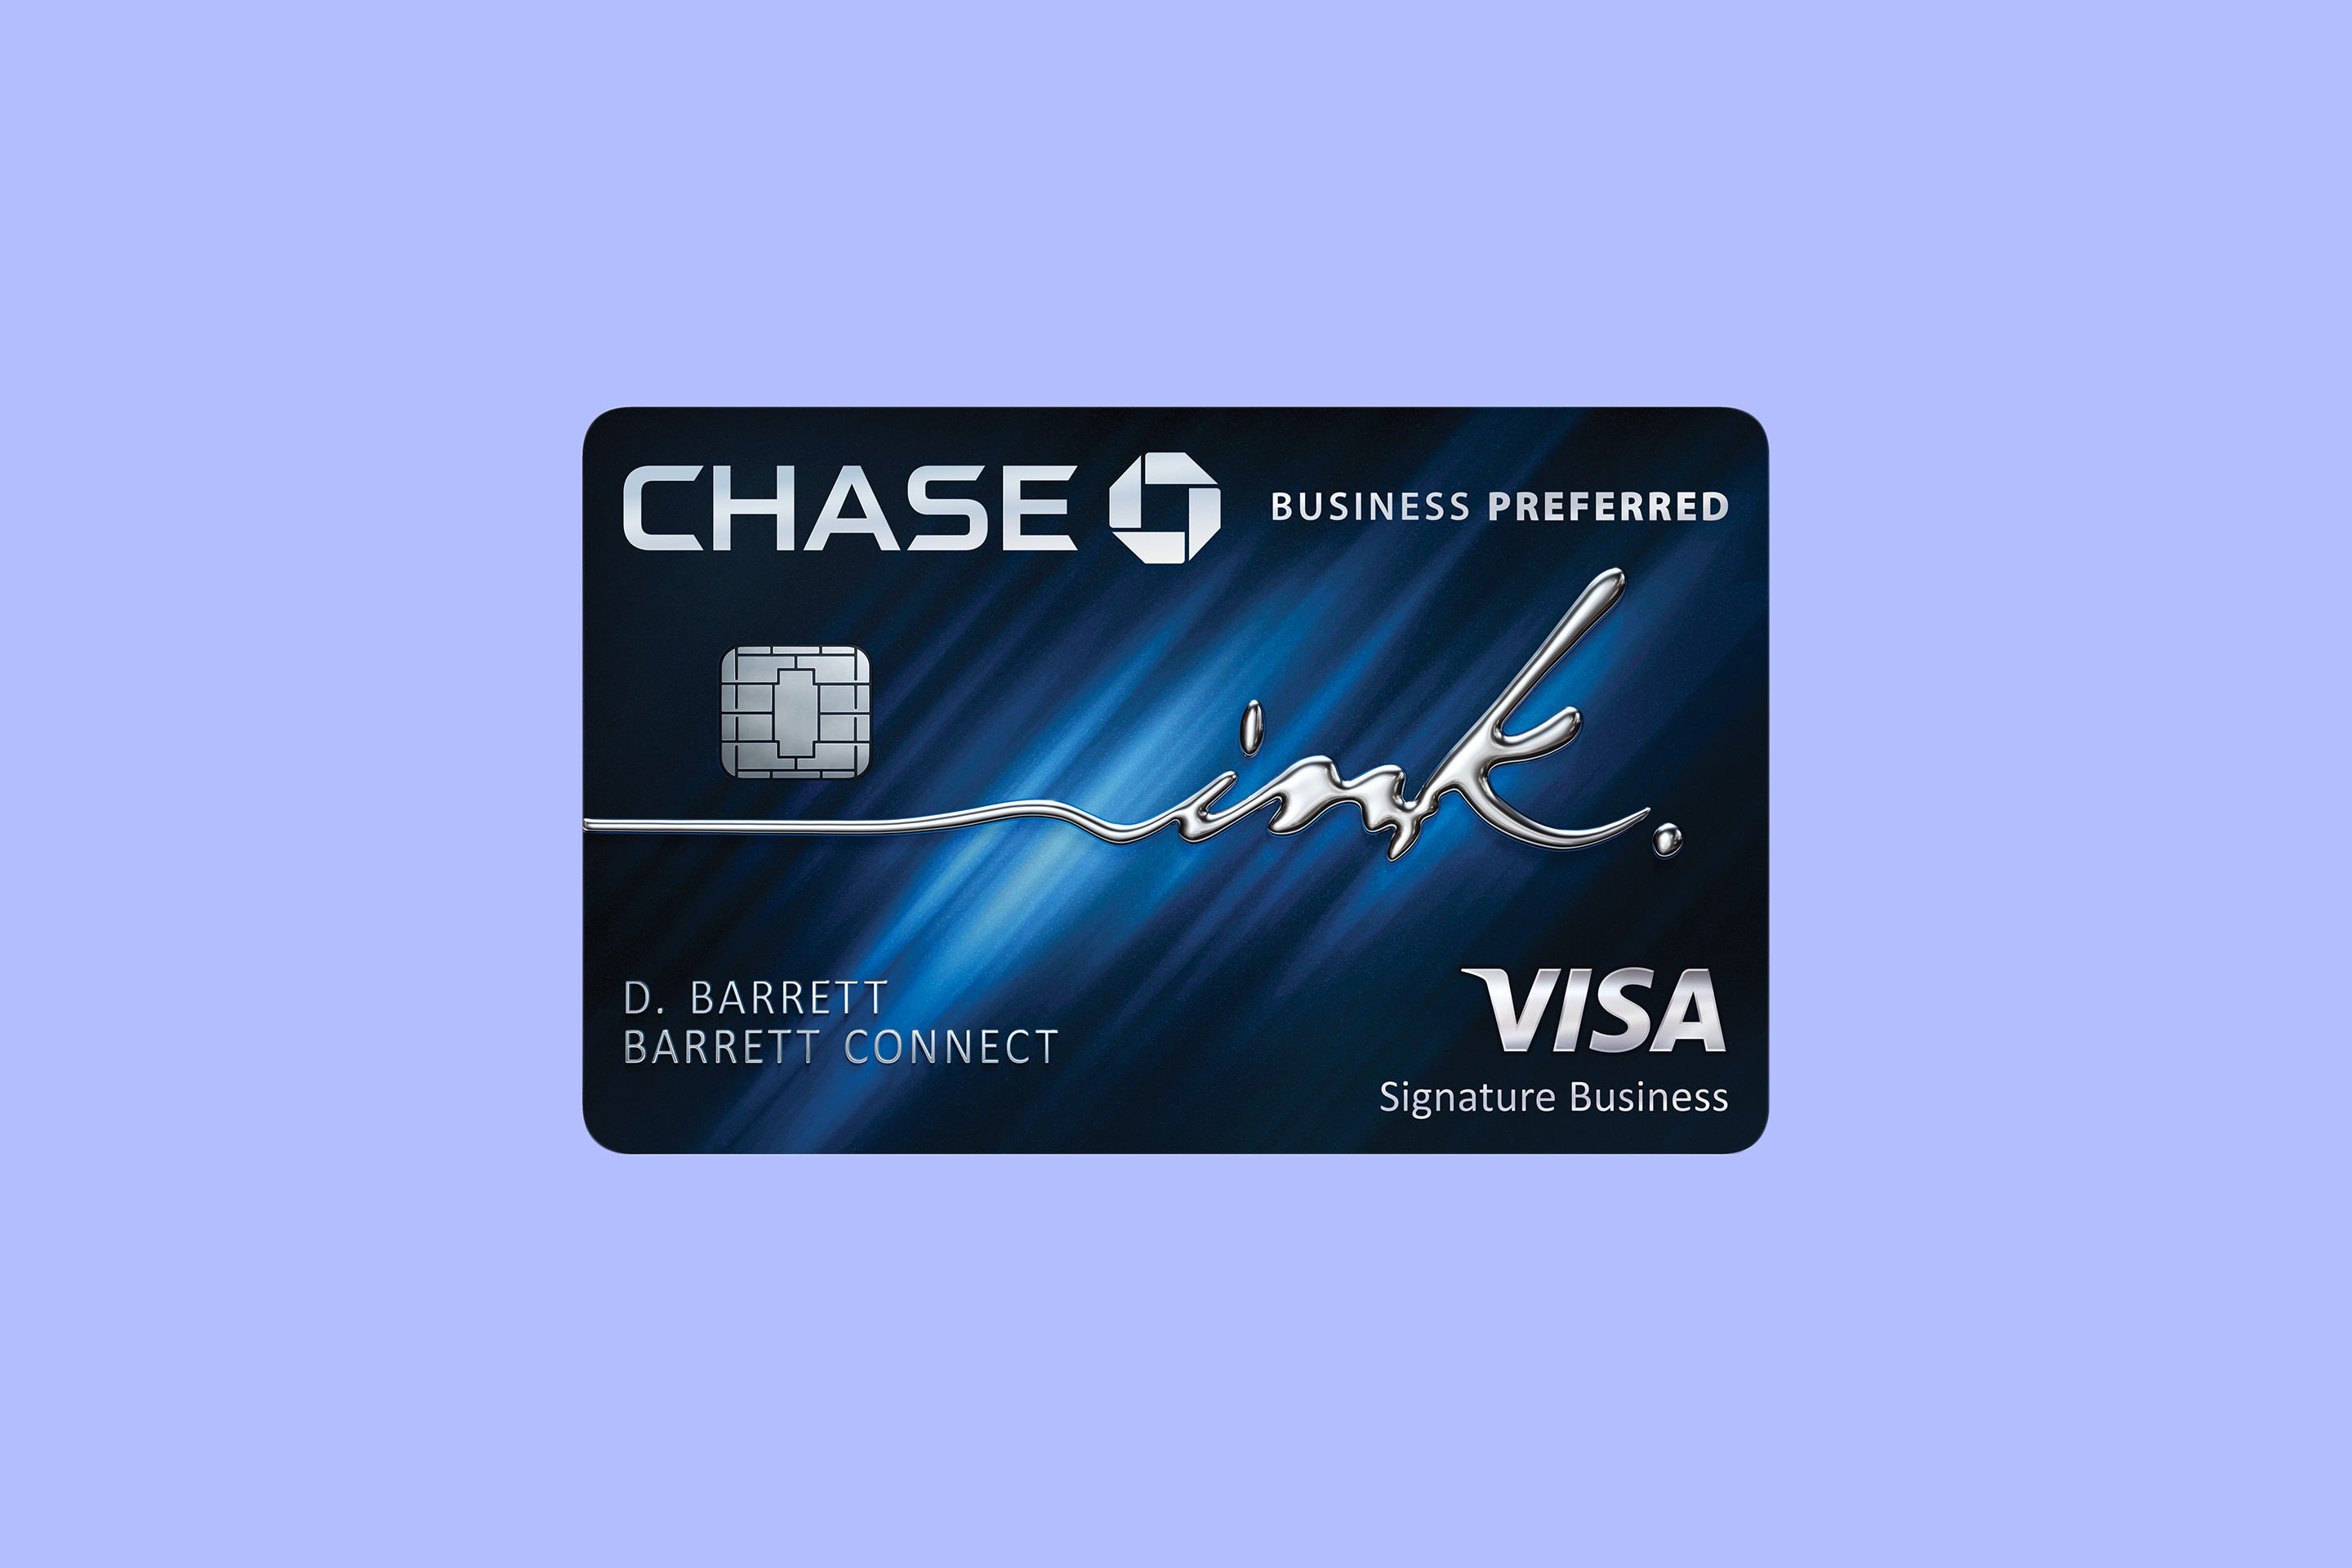 This Chase Ink Business Preferred Credit Card Offers Today's Best Bonus Point Deal